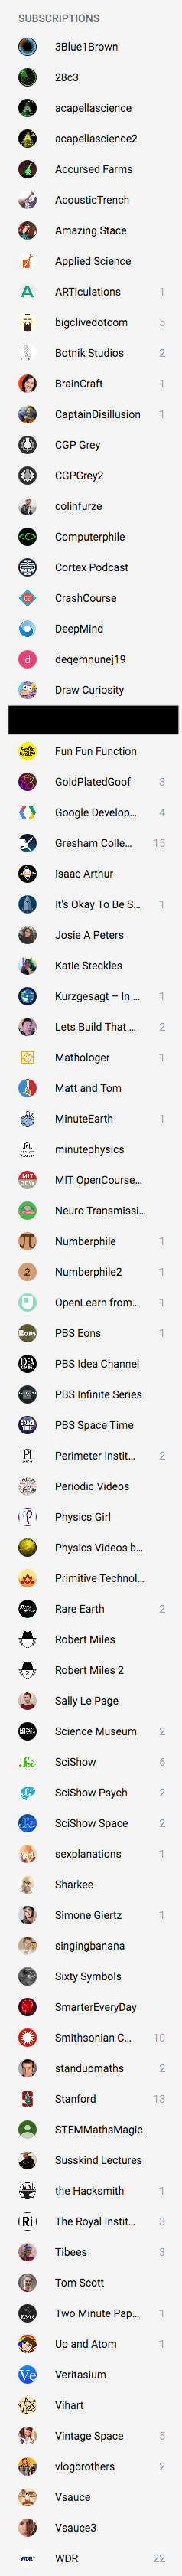 List of my current YouTube subscriptions. It's very long.